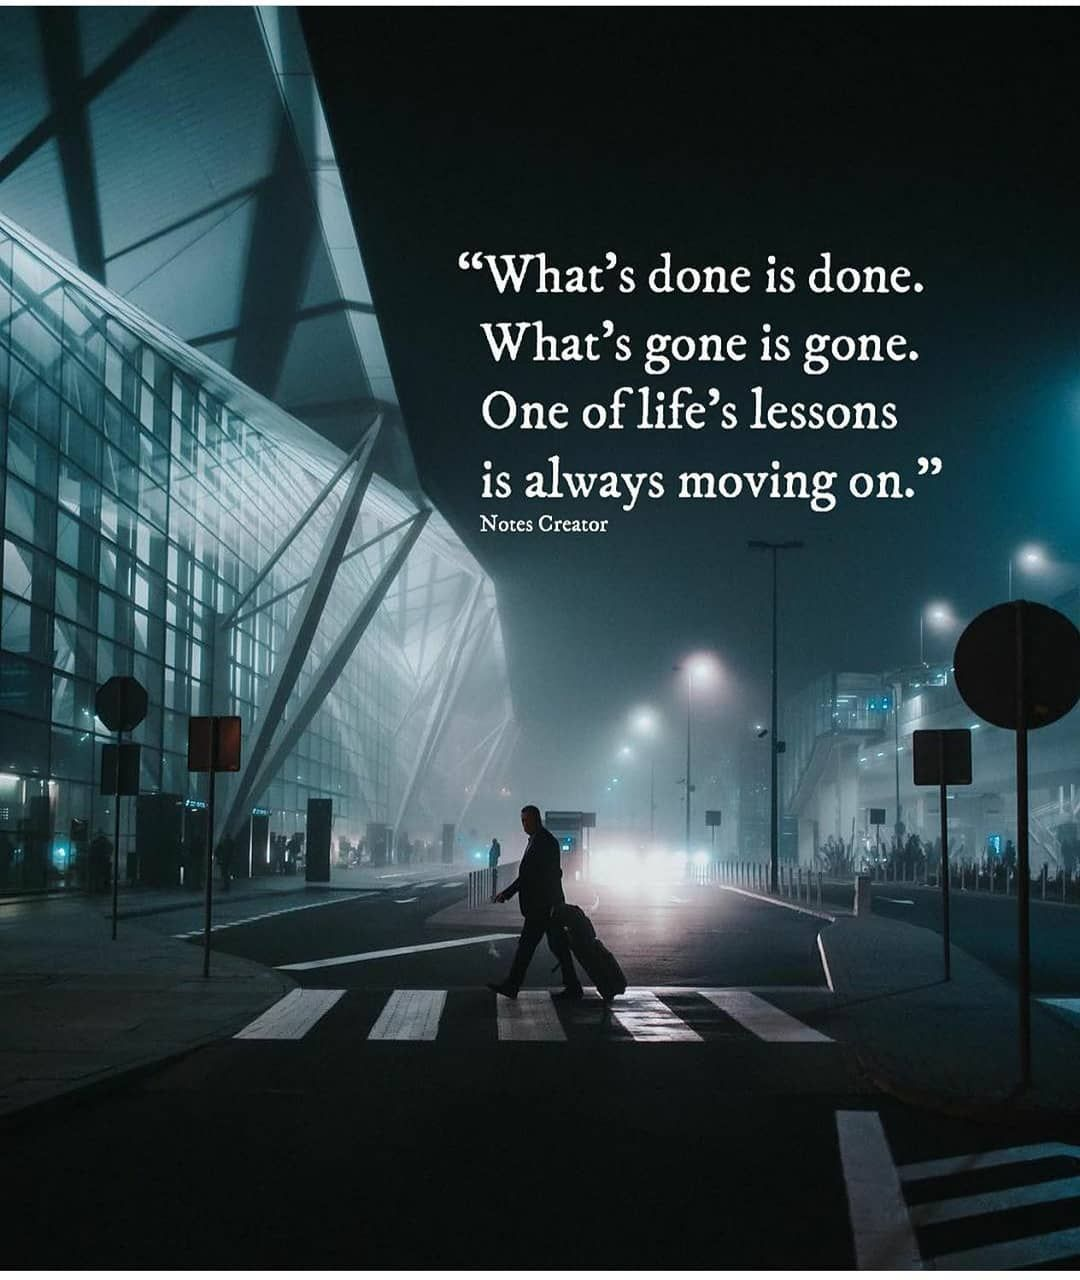 Quotes Success Motivation On Instagram Big Lesson Lf Life Always Move On D Motivational Quotes For Success Inspirational Quotes Motivation Past Quotes